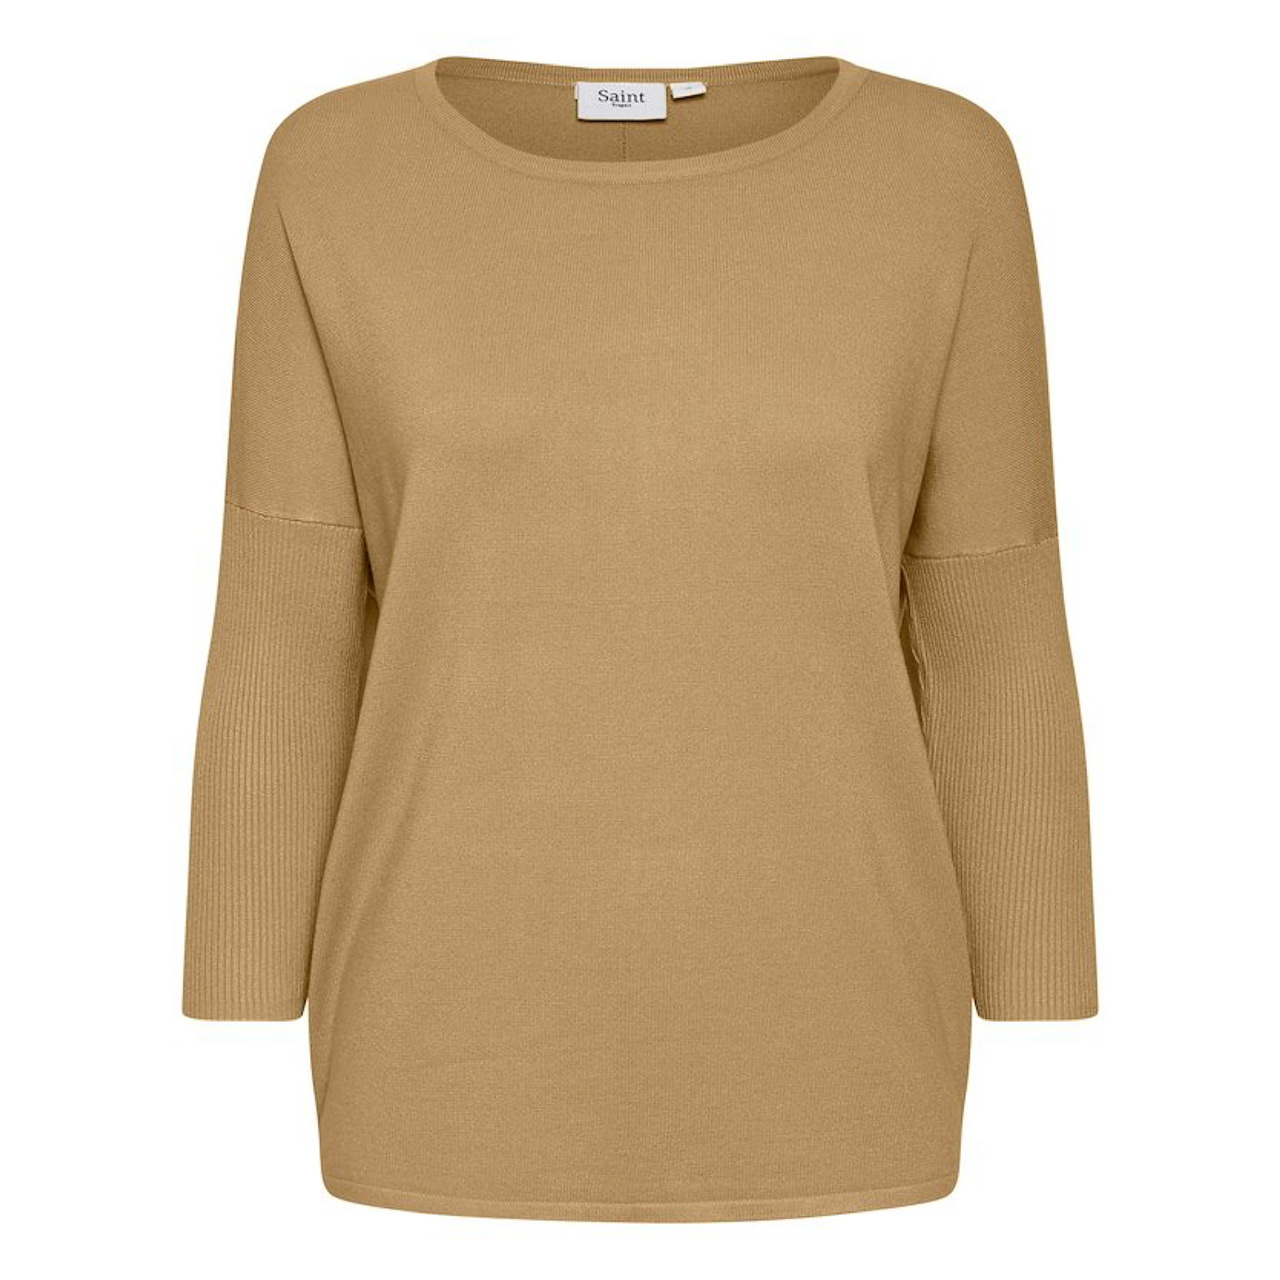 Coffee Mila Knit by Saint Tropez